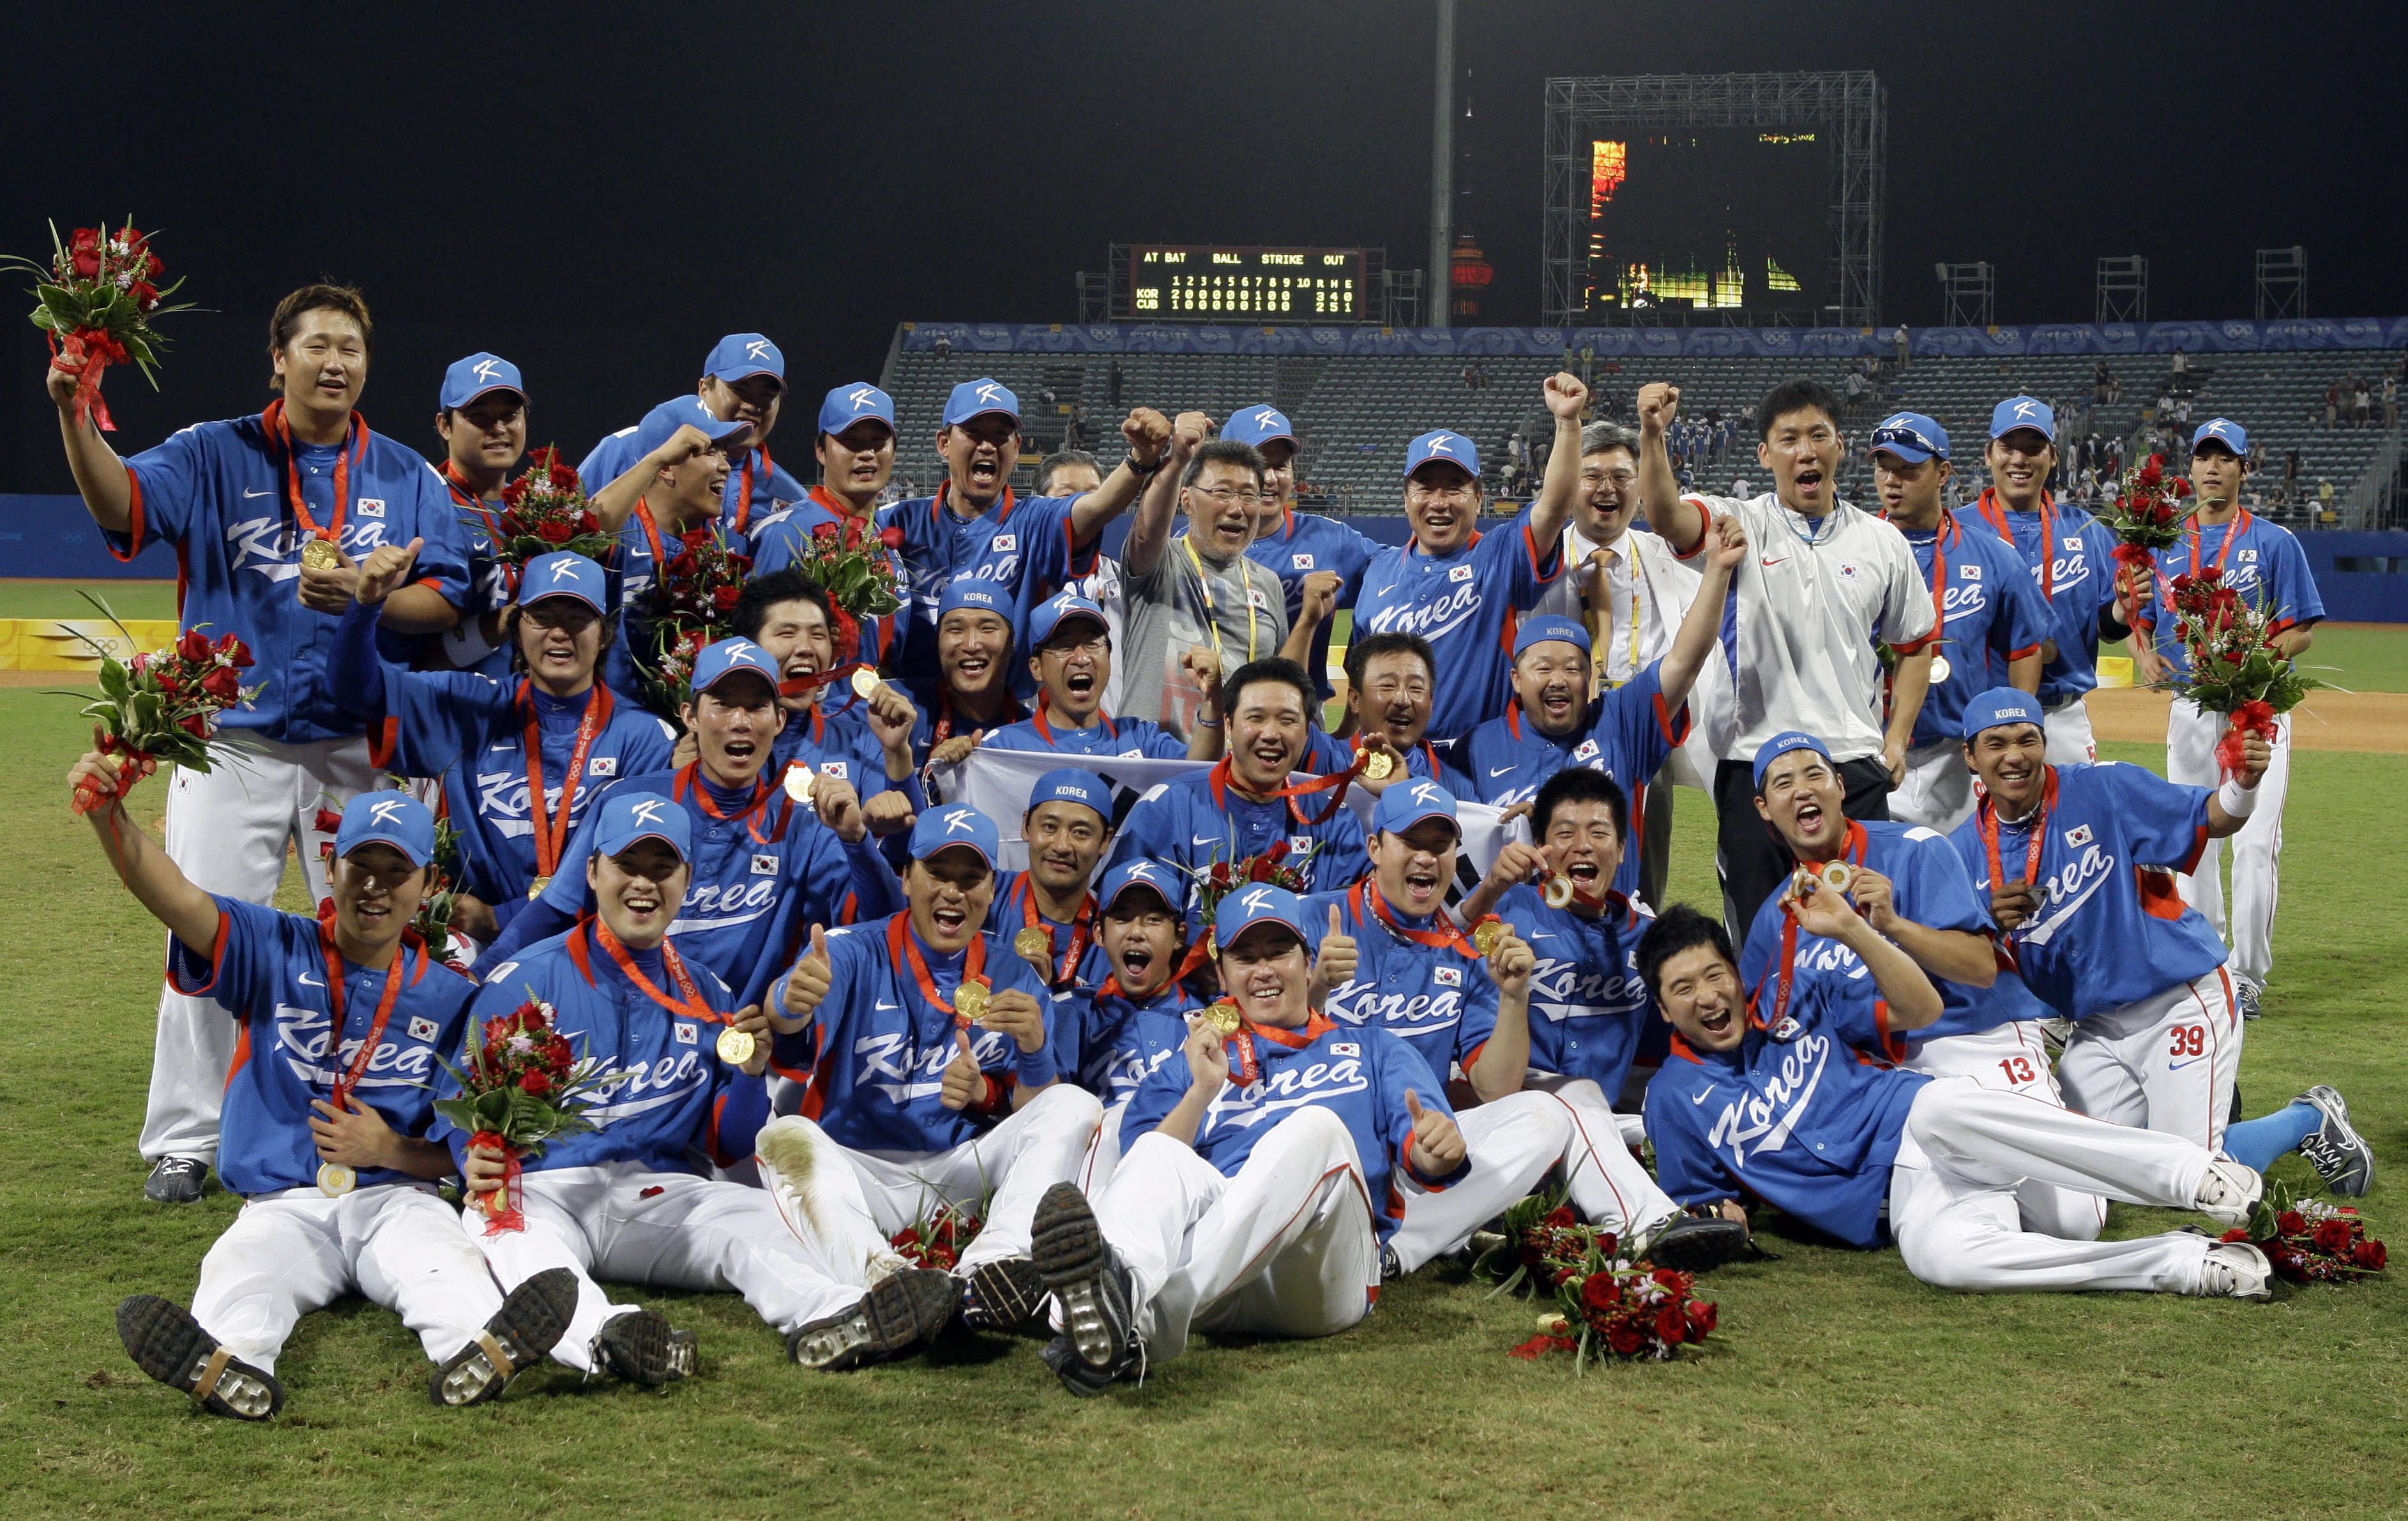 South Korea players celebrate with their gold medals after beating Cuba 3-2 in the gold medal baseball game at the Beijing 2008 Olympics in Beijing, Saturday, Aug. 23, 2008. (AP Photo/Kathy Willens)